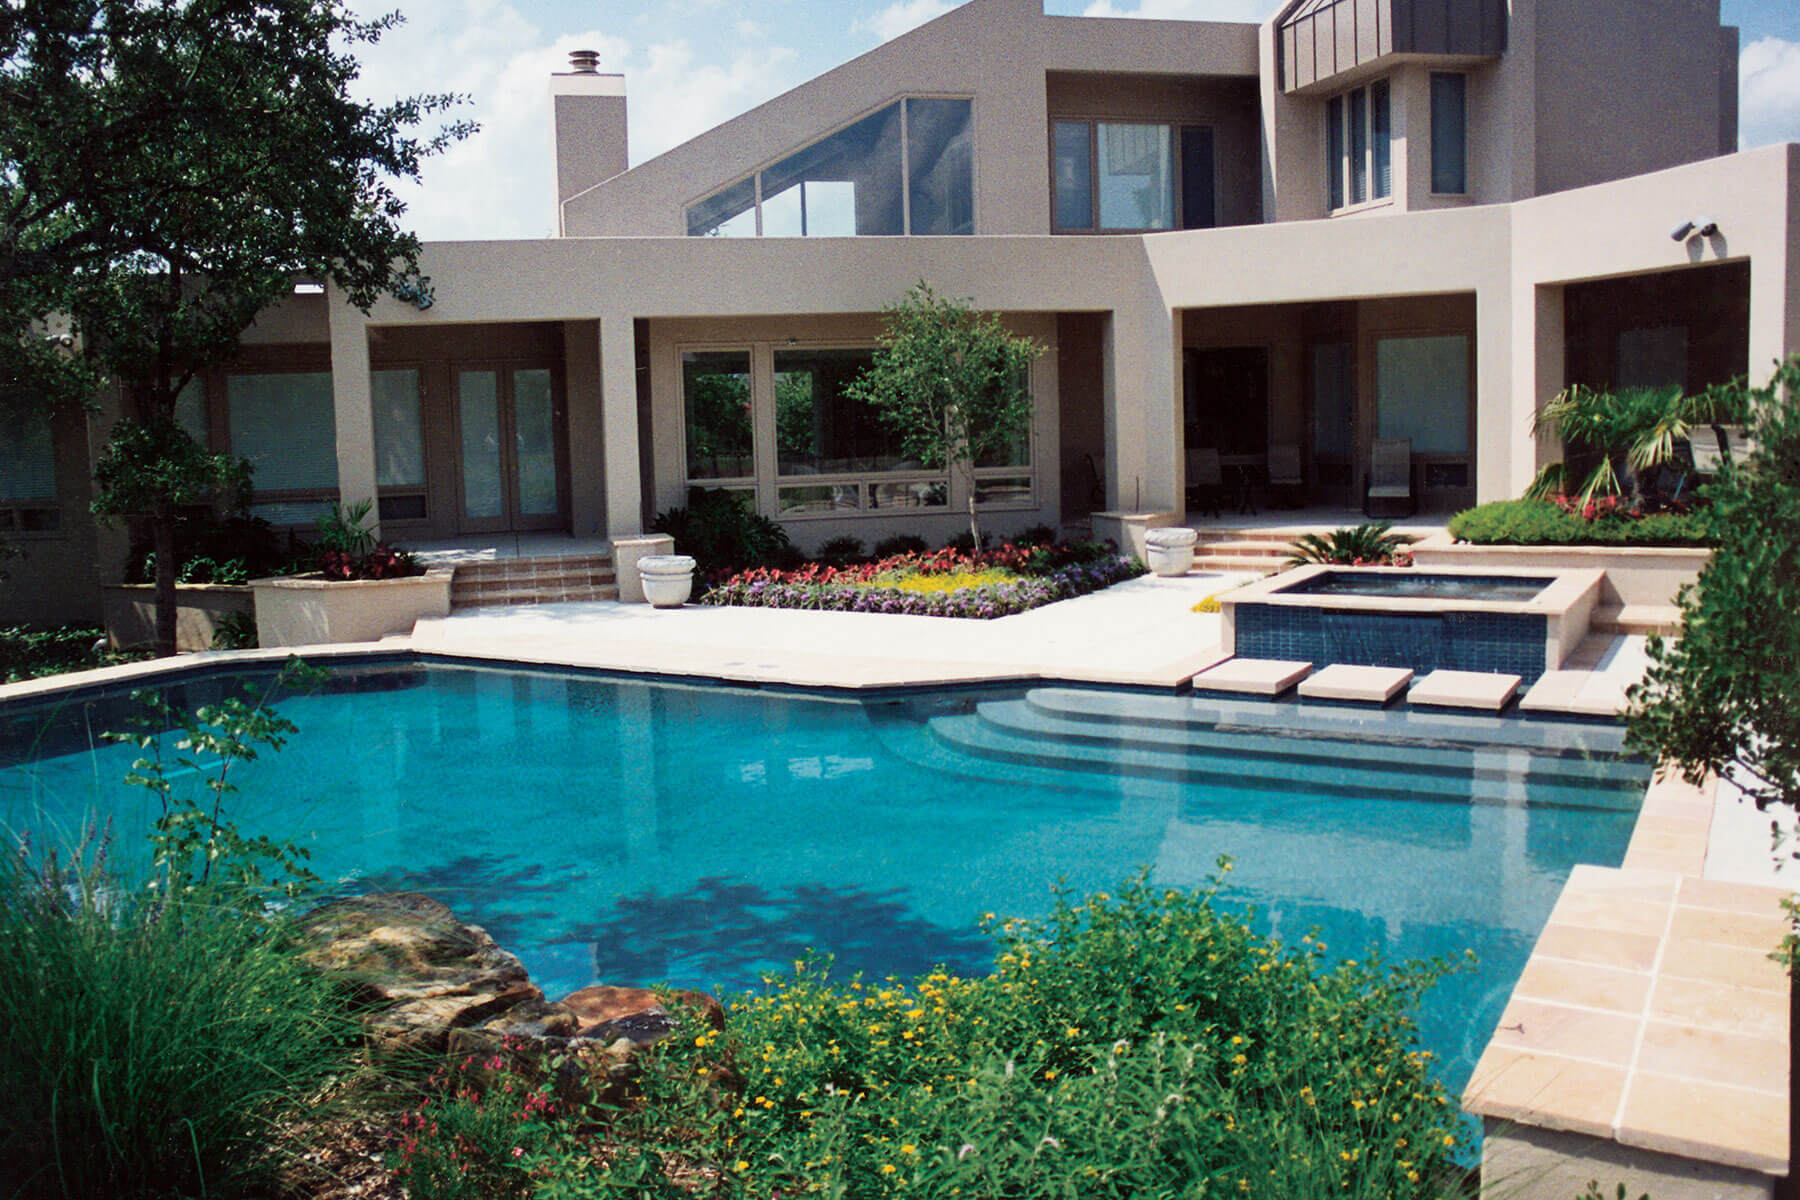 How Much Does A Custom Pool Cost Keith Zars Pools San Antonio